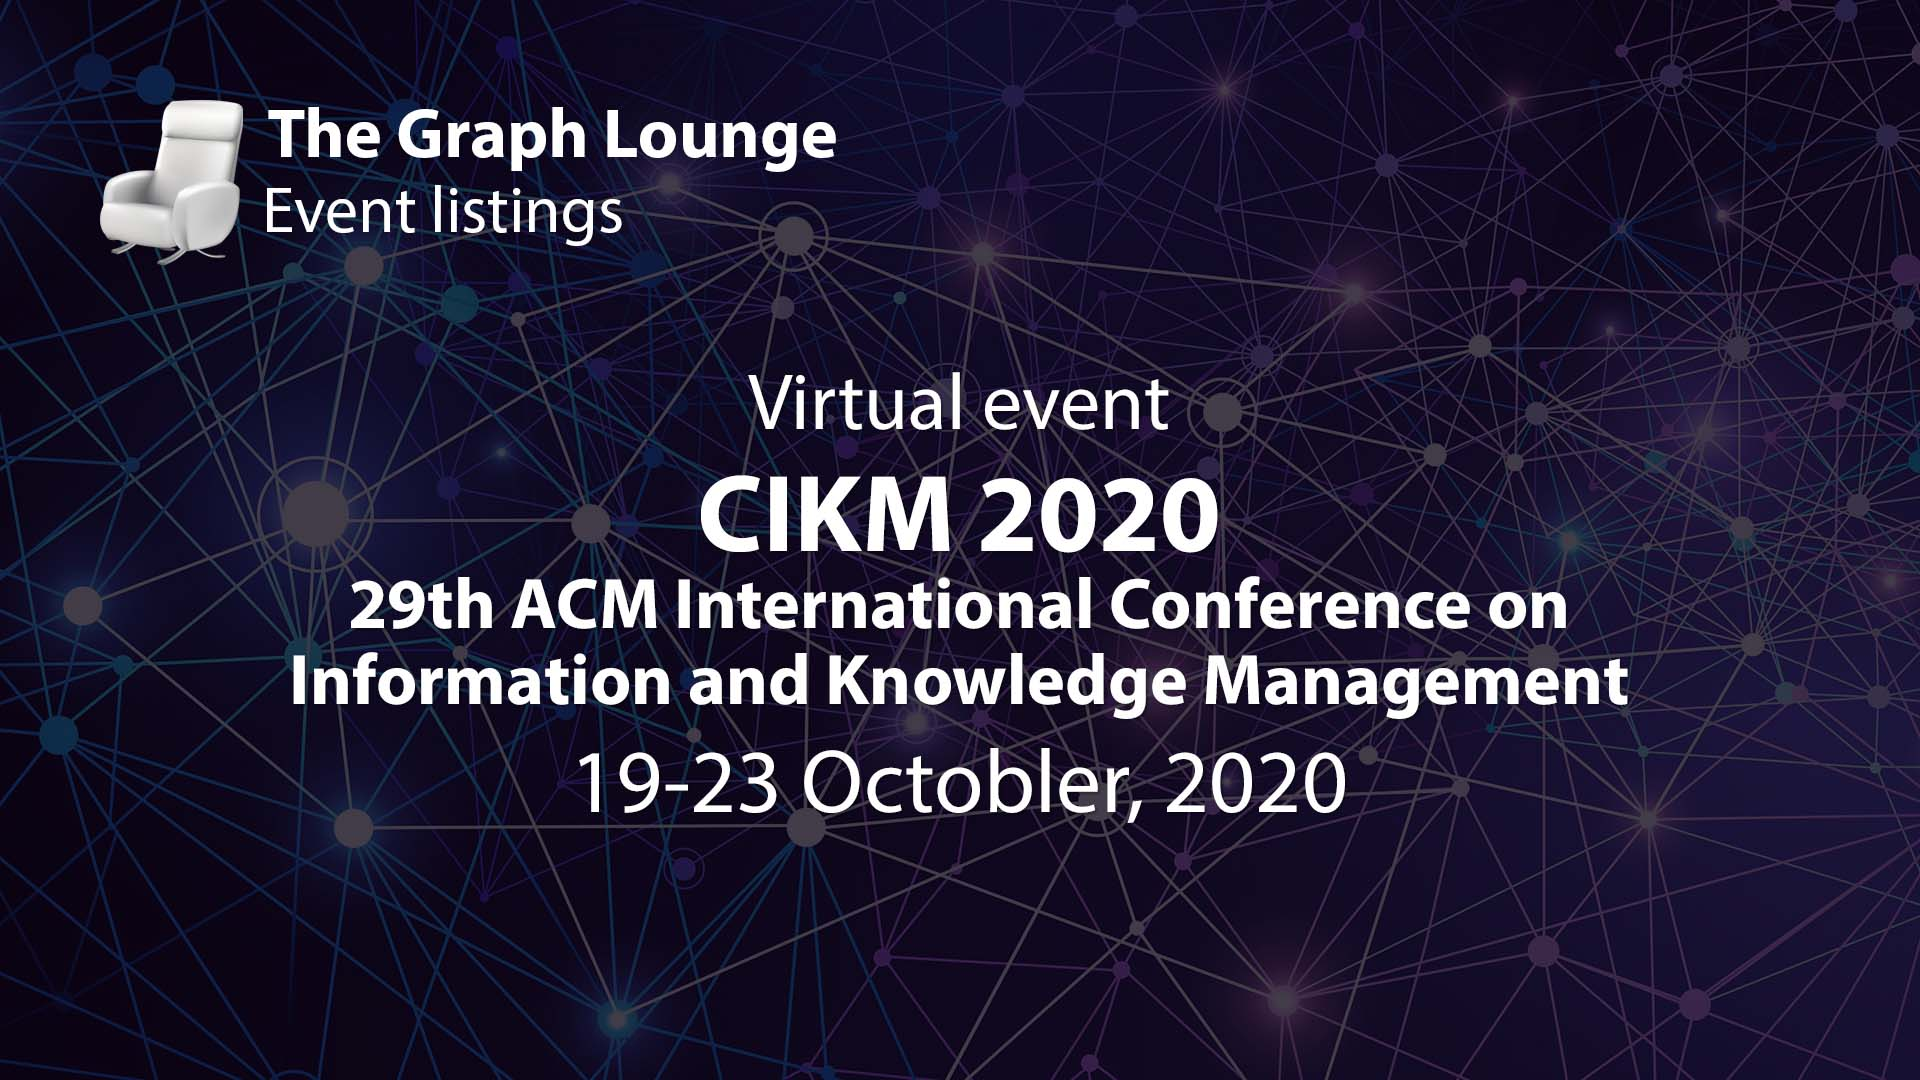 29th ACM International Conference on Information and Knowledge Management (CIKM2020)